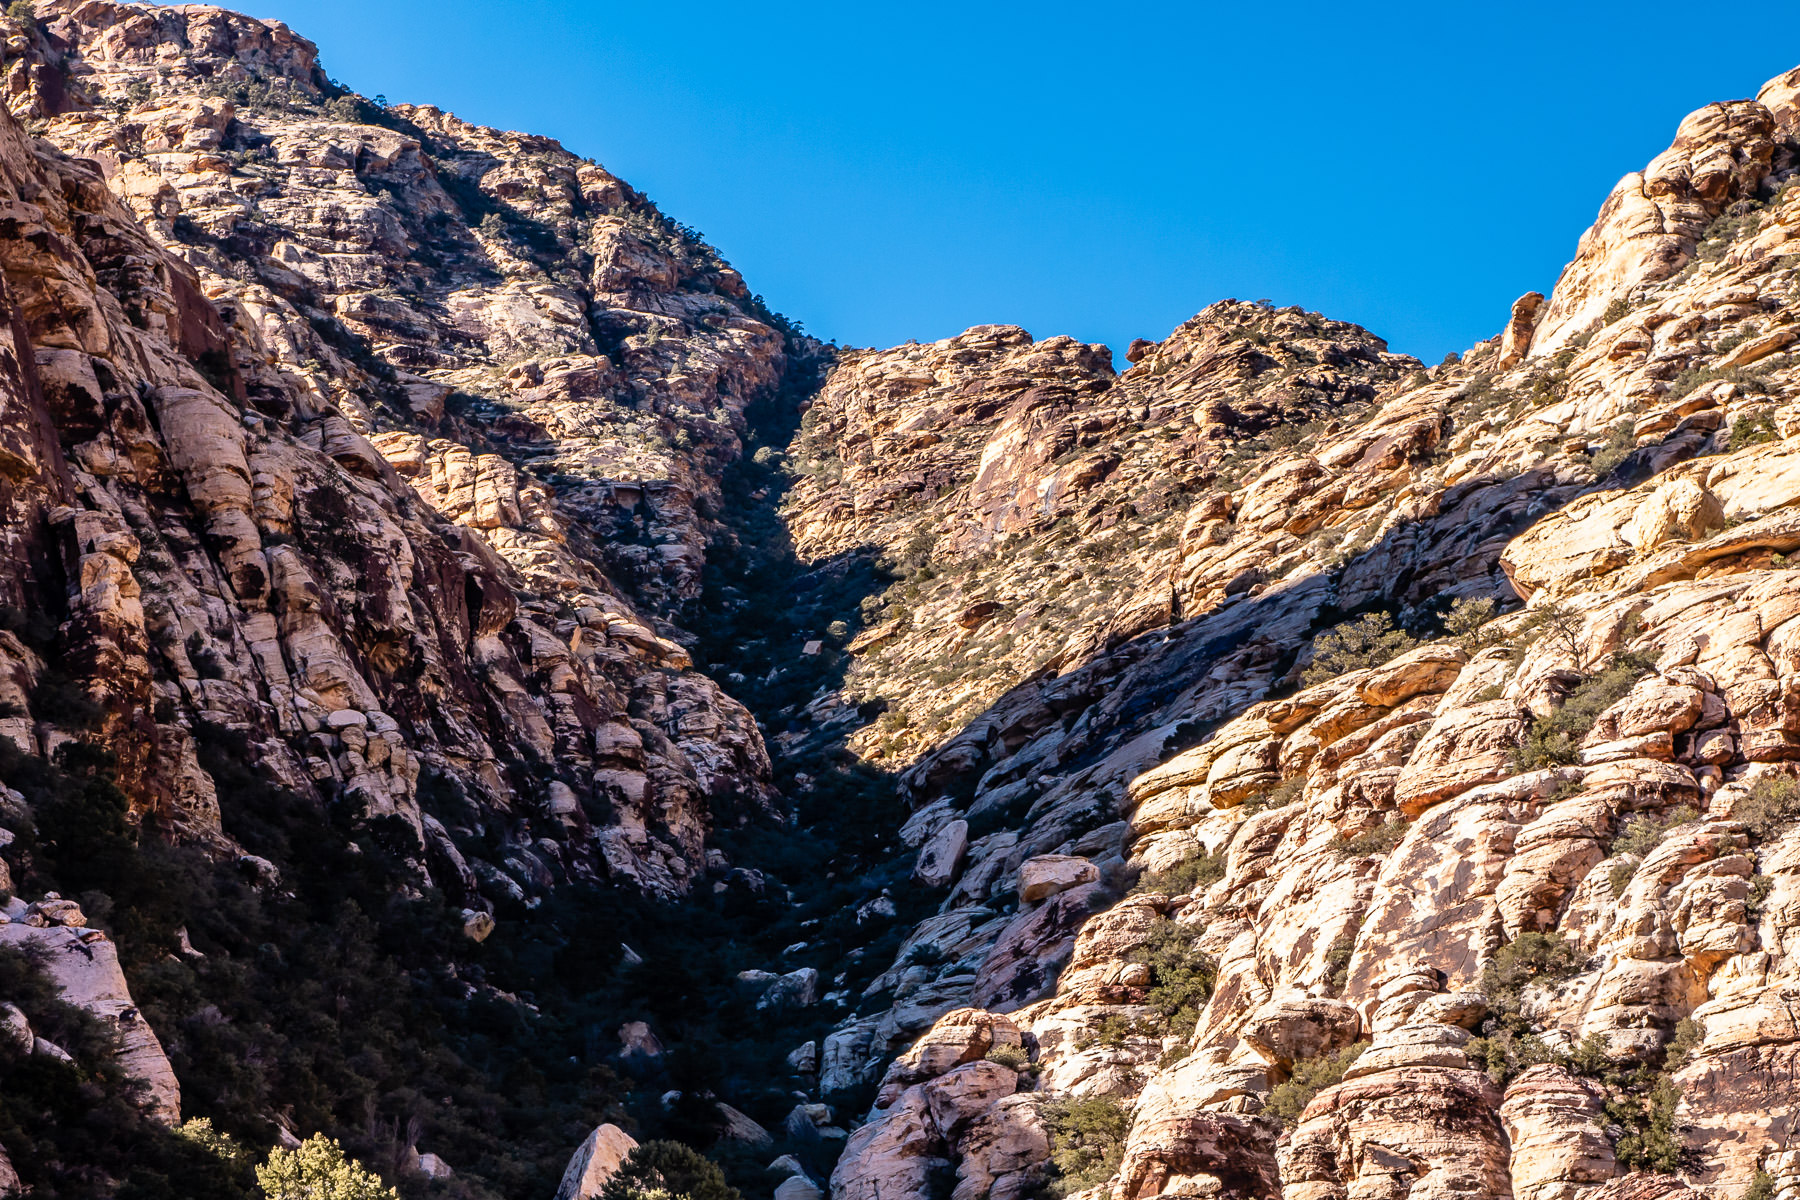 The rugged, arid landscape of Nevada's Red Rock Canyon stretches into the distance.The rugged, arid landscape of Nevada's Red Rock Canyon stretches into the distance.